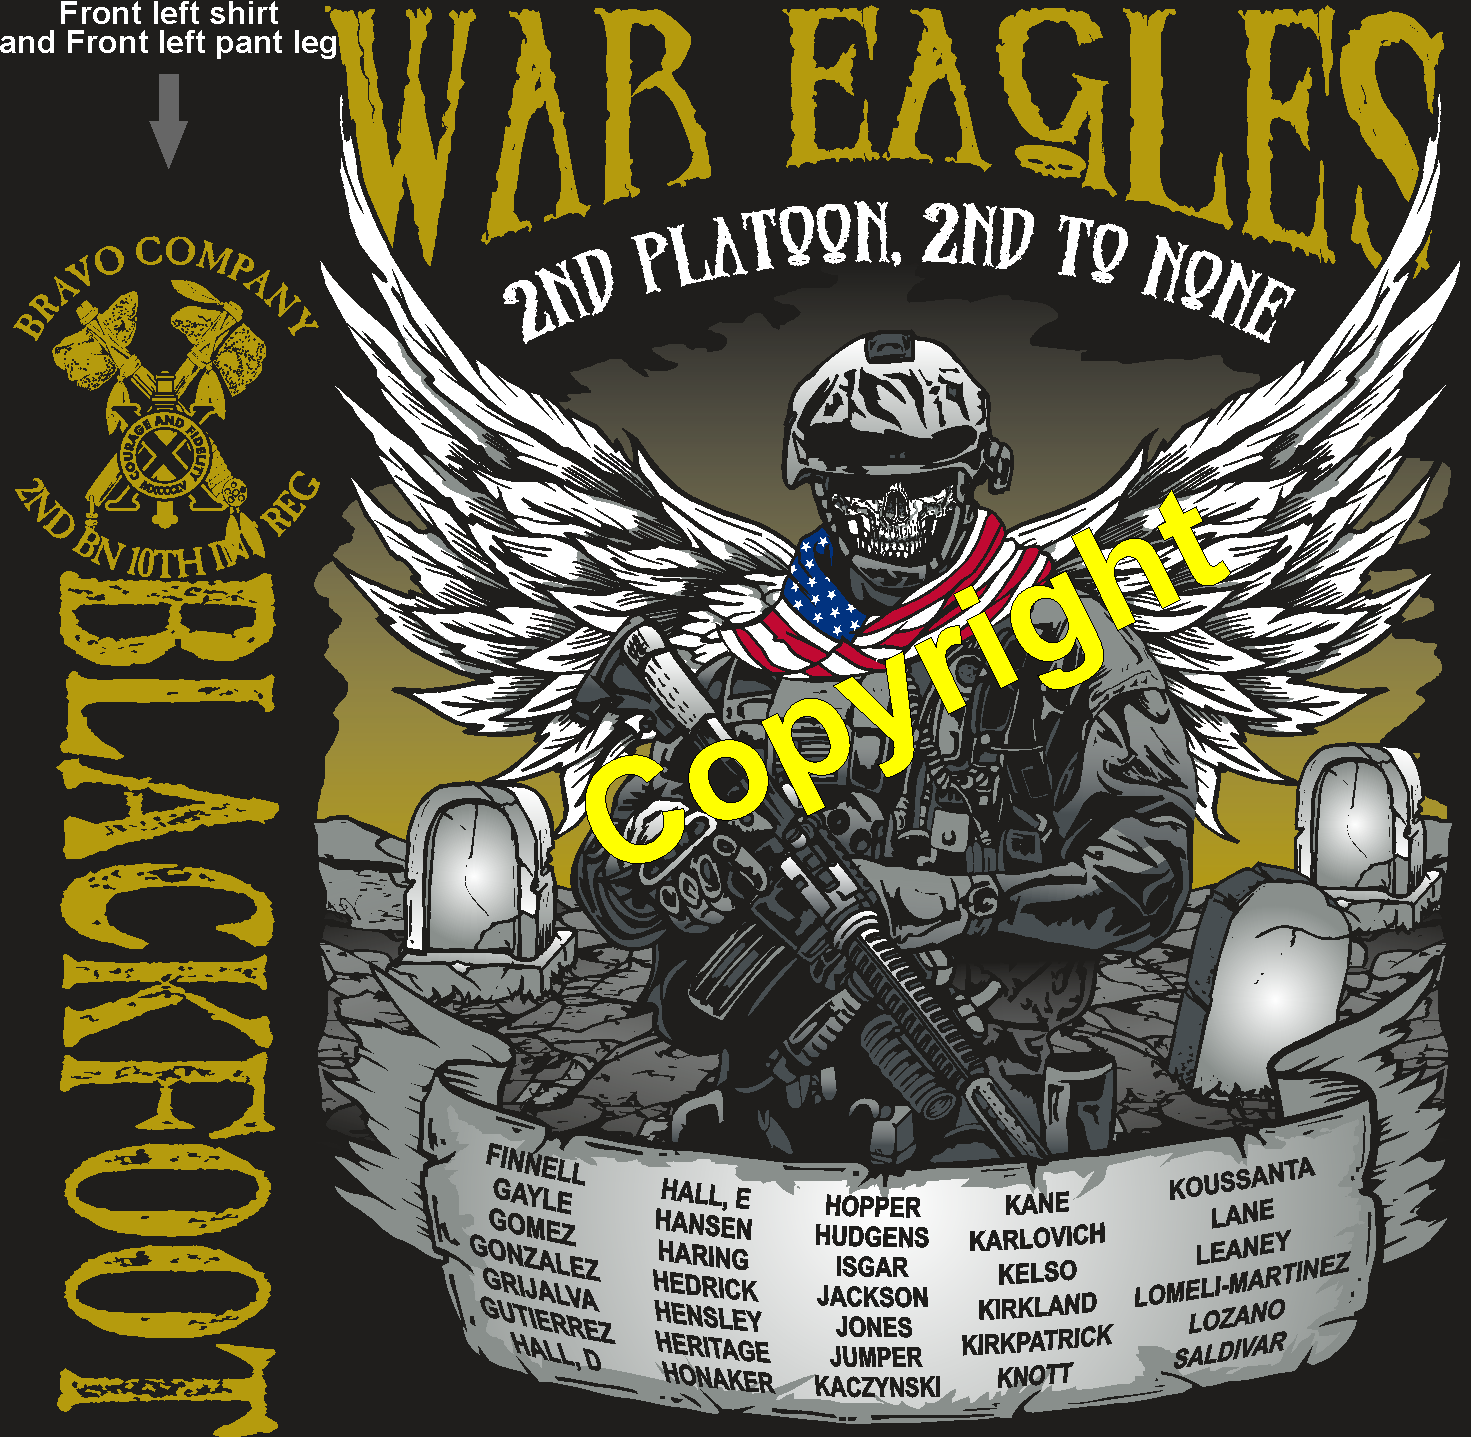 BRAVO 210 WAR EAGLES GRADUATING DAY 9-13-2018 digital